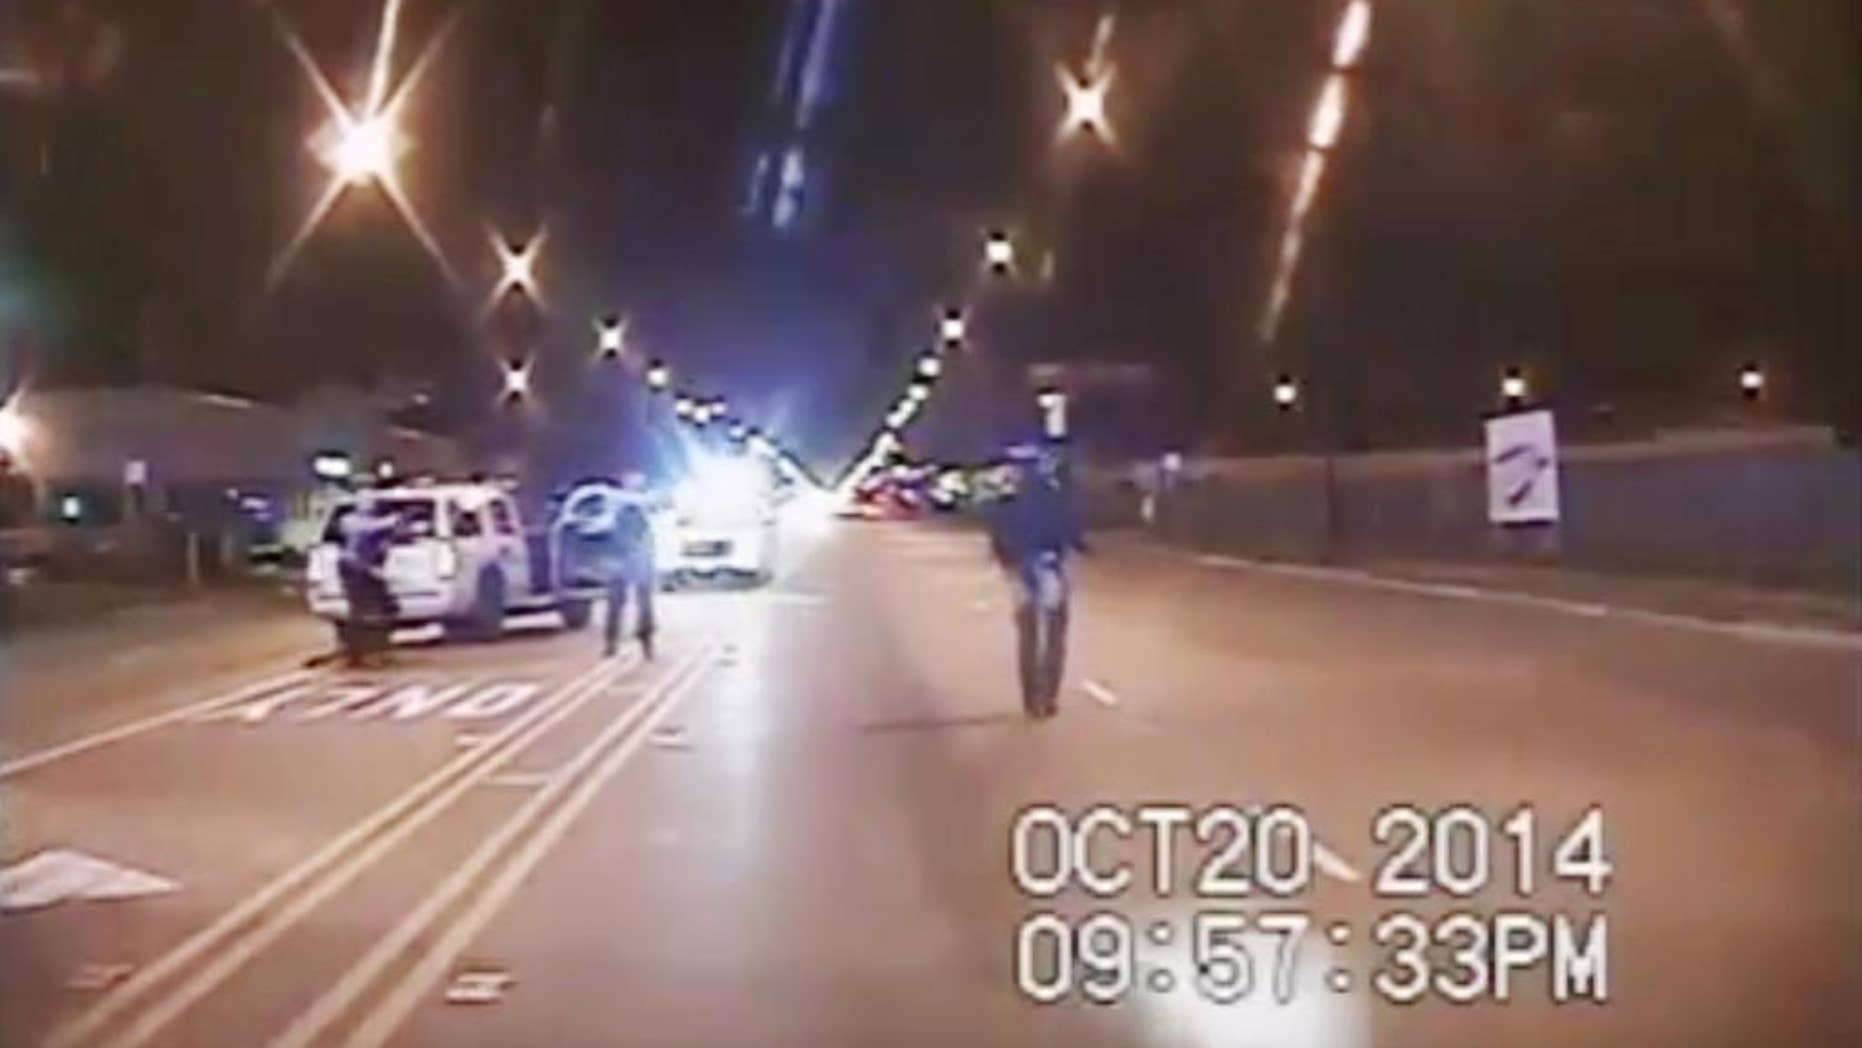 Oct. 20, 2014: In this image from dash-cam video provided by the Chicago Police Department, Laquan McDonald, right, walks down the street moments before being fatally shot by officer Jason Van Dyke sixteen times in Chicago.